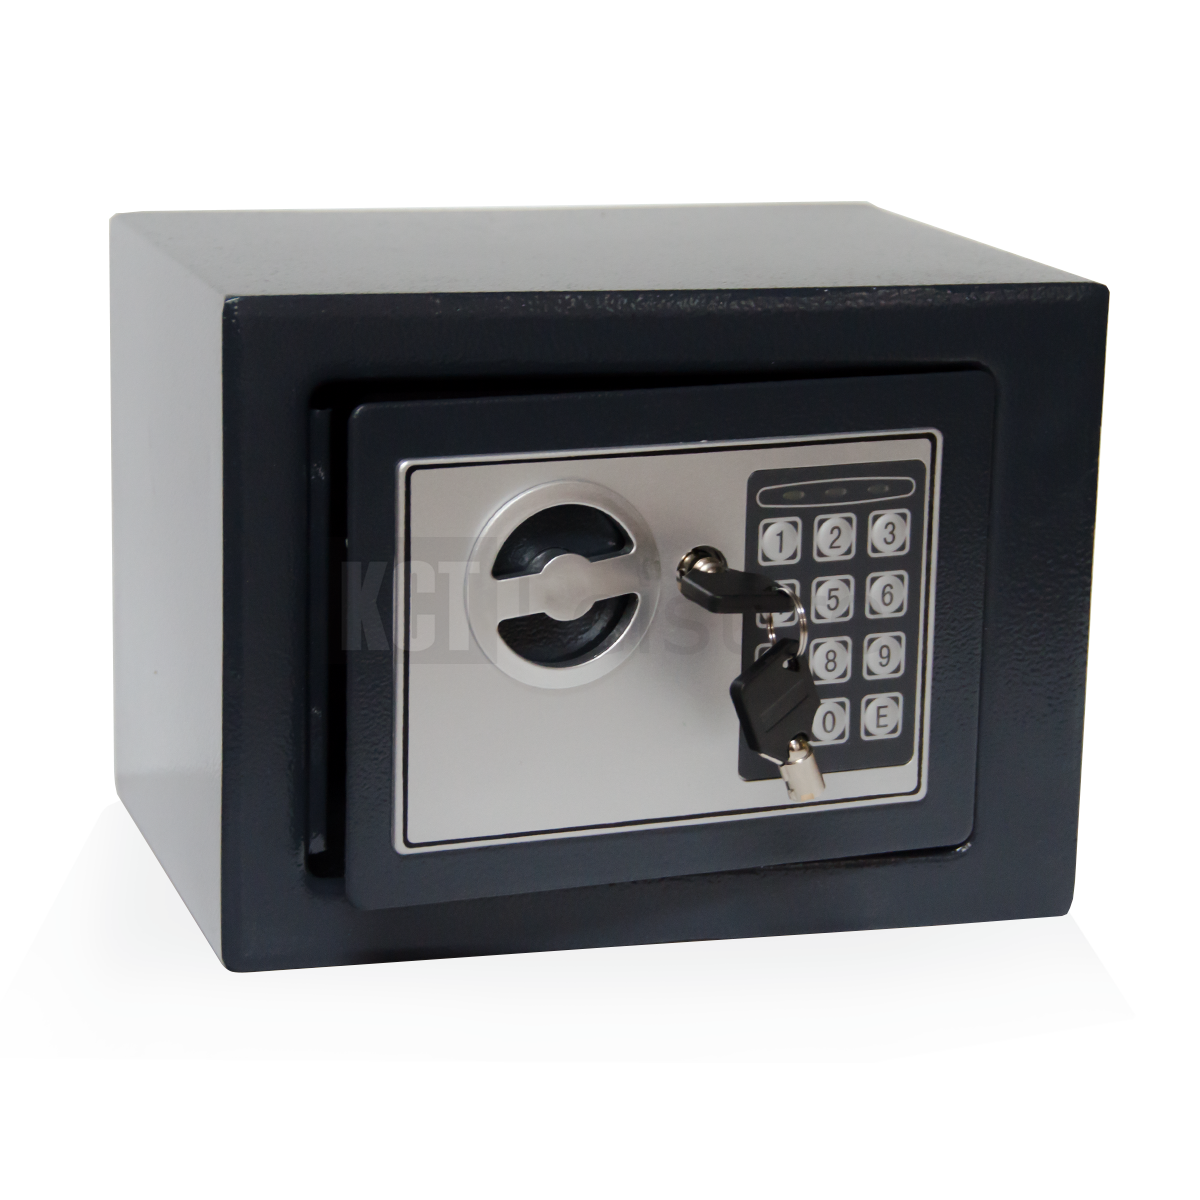 Kct small home digital safe secure safety box high for Small safe box for home